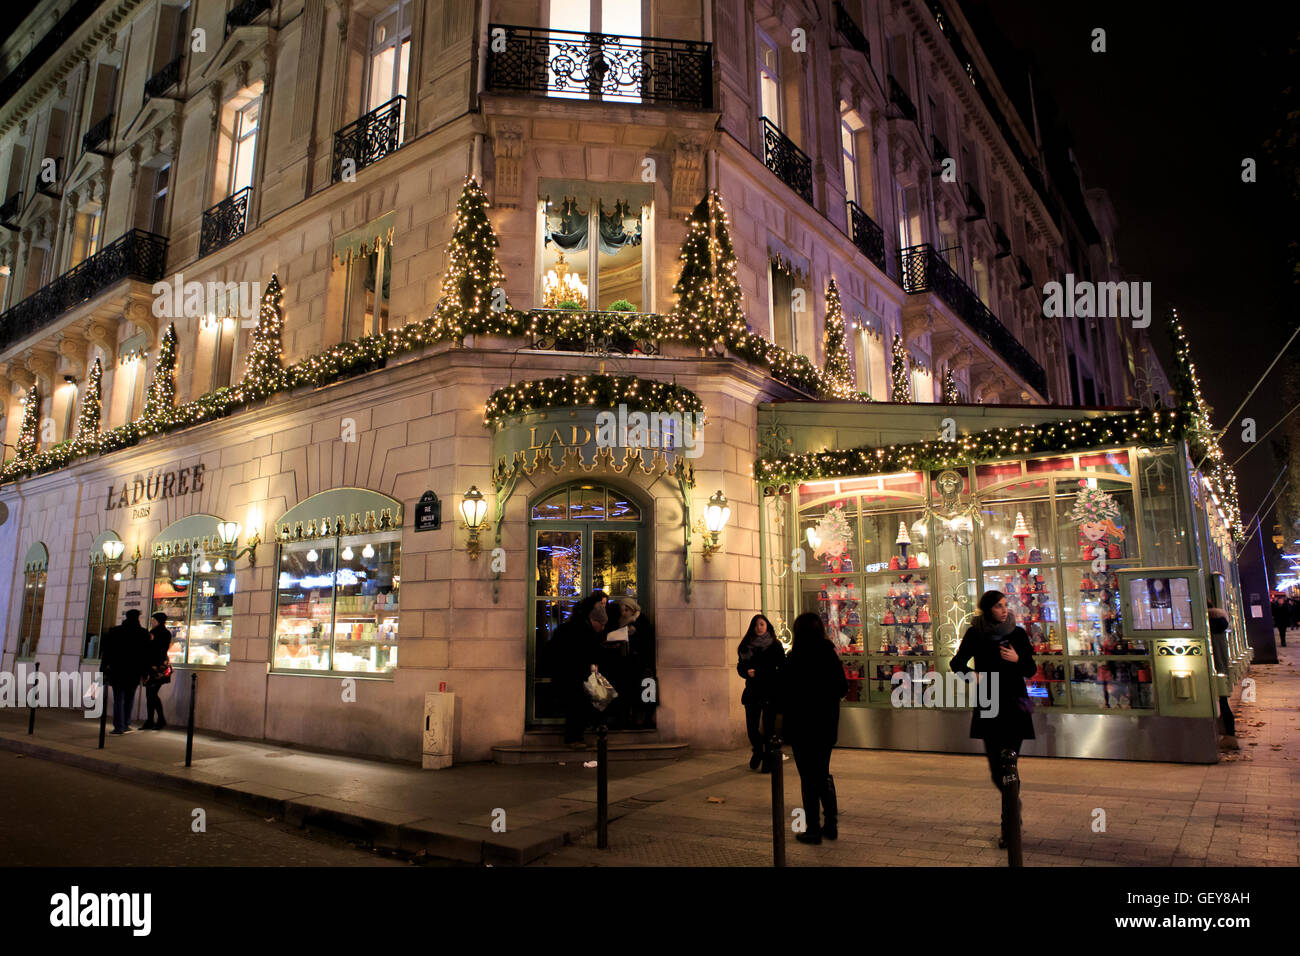 Bright lights and ostentatious shops of the Champs Elysees in Paris, France - Stock Image